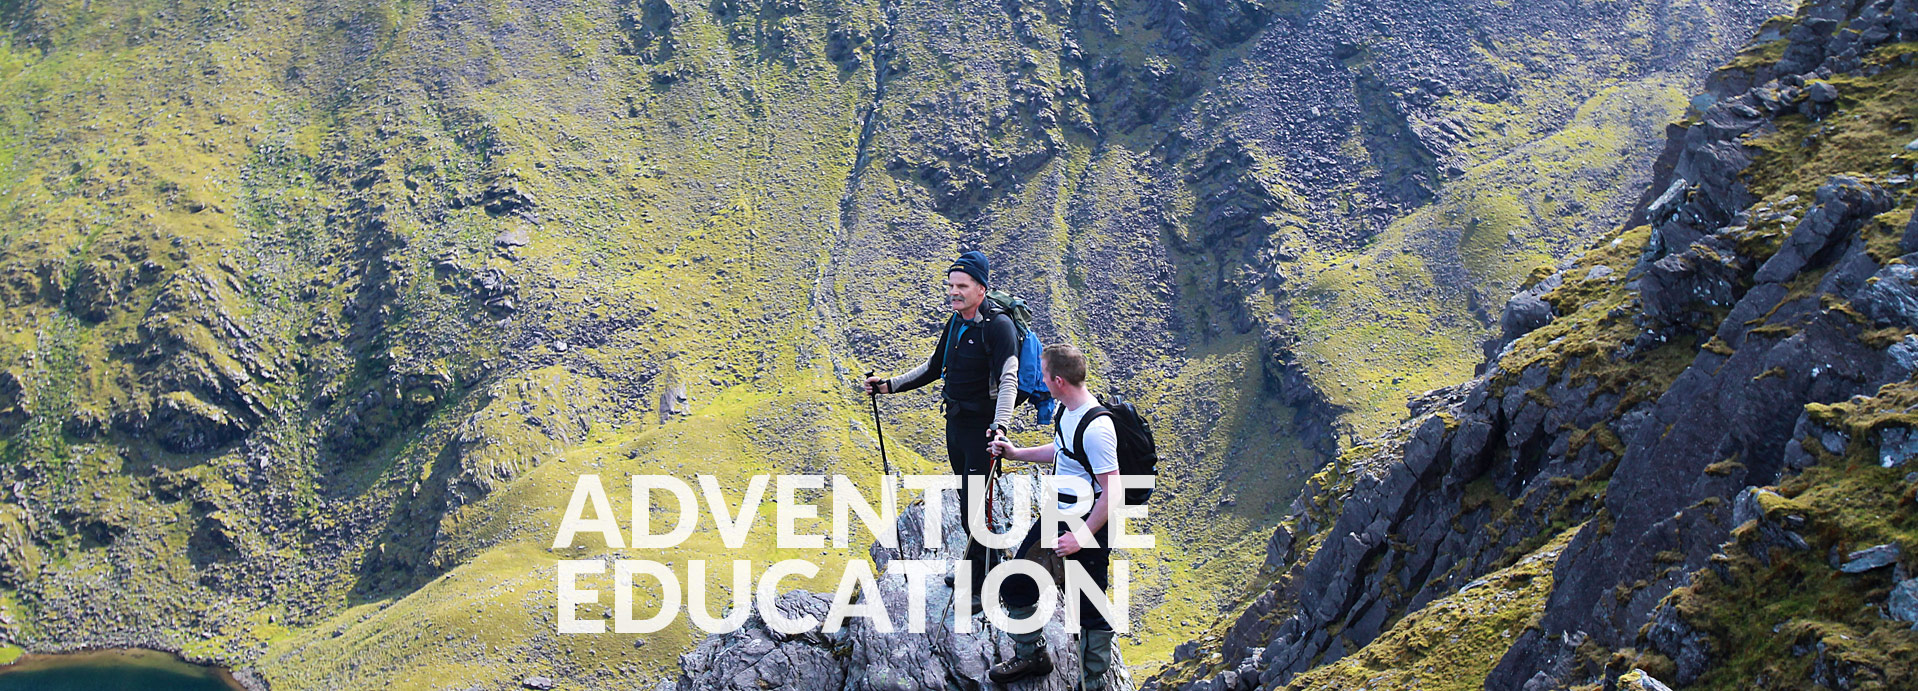 cappanalea adventure education